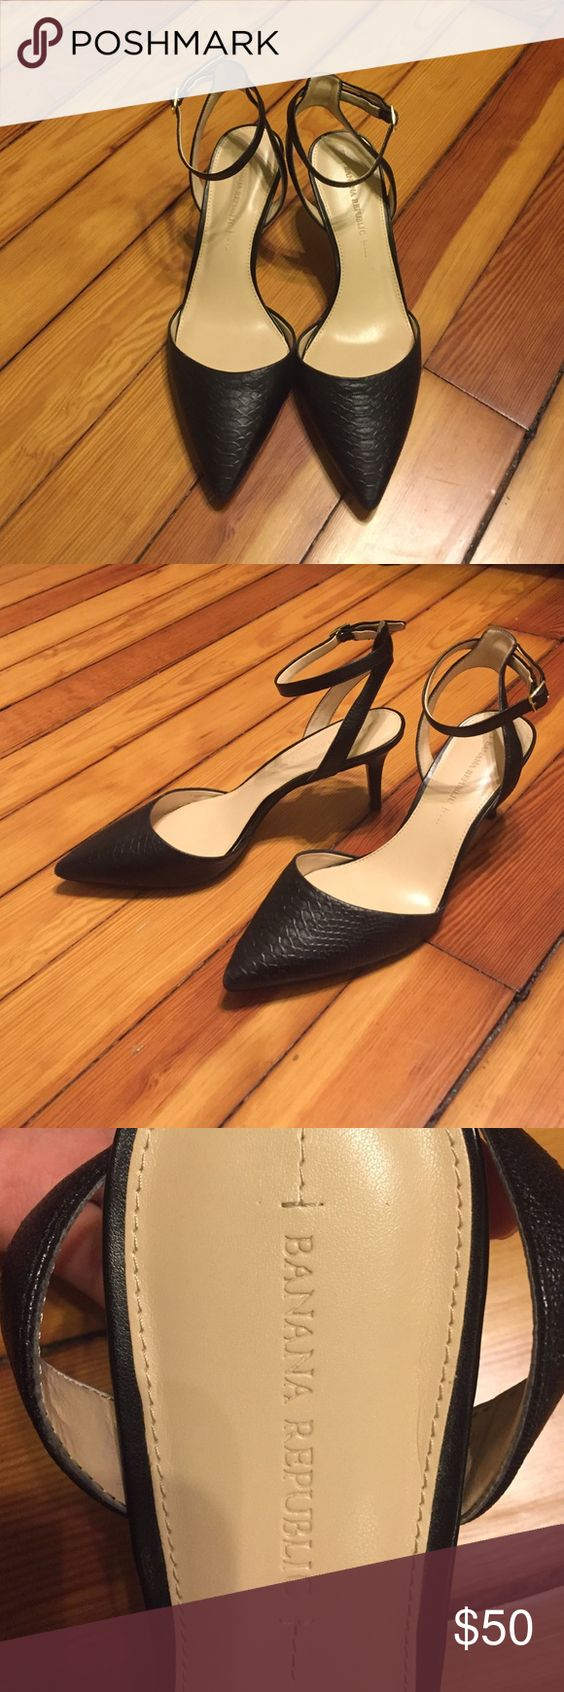 Banana Republic Black Ankle Strap High Heels Banana Republic black high heals with ankle strap.  Snake skin imprint on leather.  Worn only three or four times.  Great condition.  Heel is about 3 inches high.  Size 9M. Banana Republic Shoes Heels